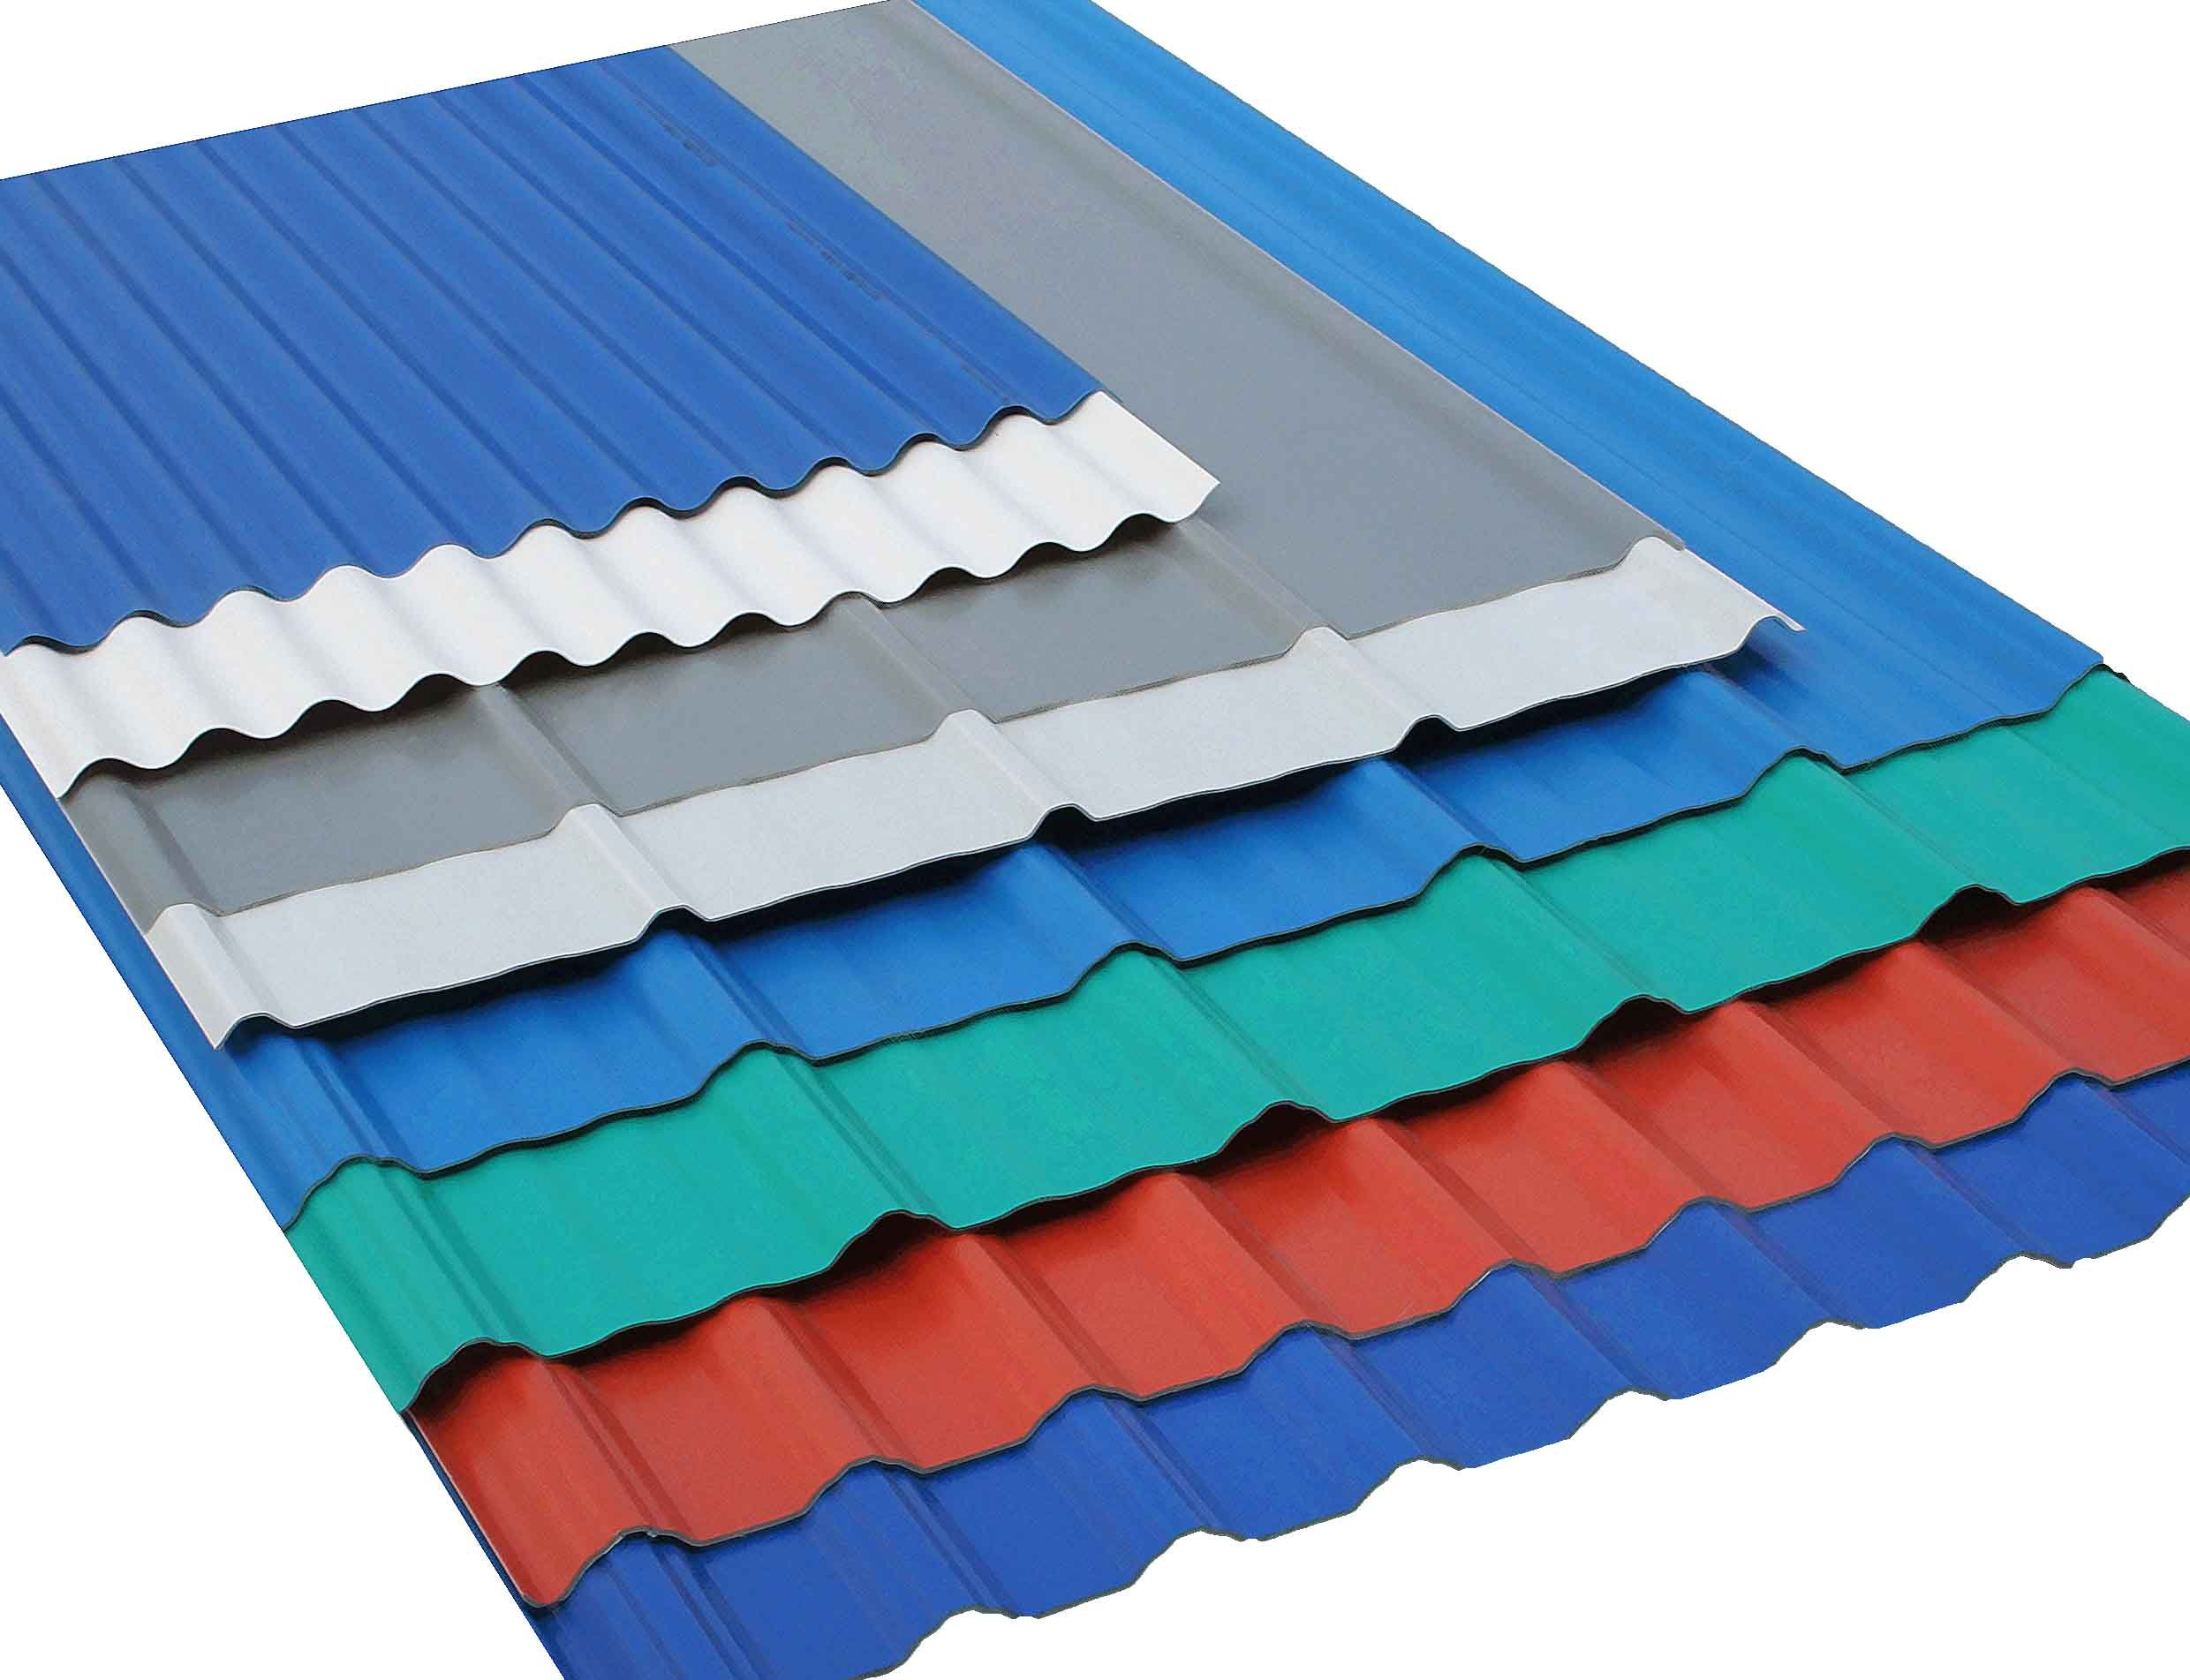 Galvanized Steel Corrugated Roof Sheets Corrugated Aluzinc Steel Sheets China Lucky Steel Co Ltd